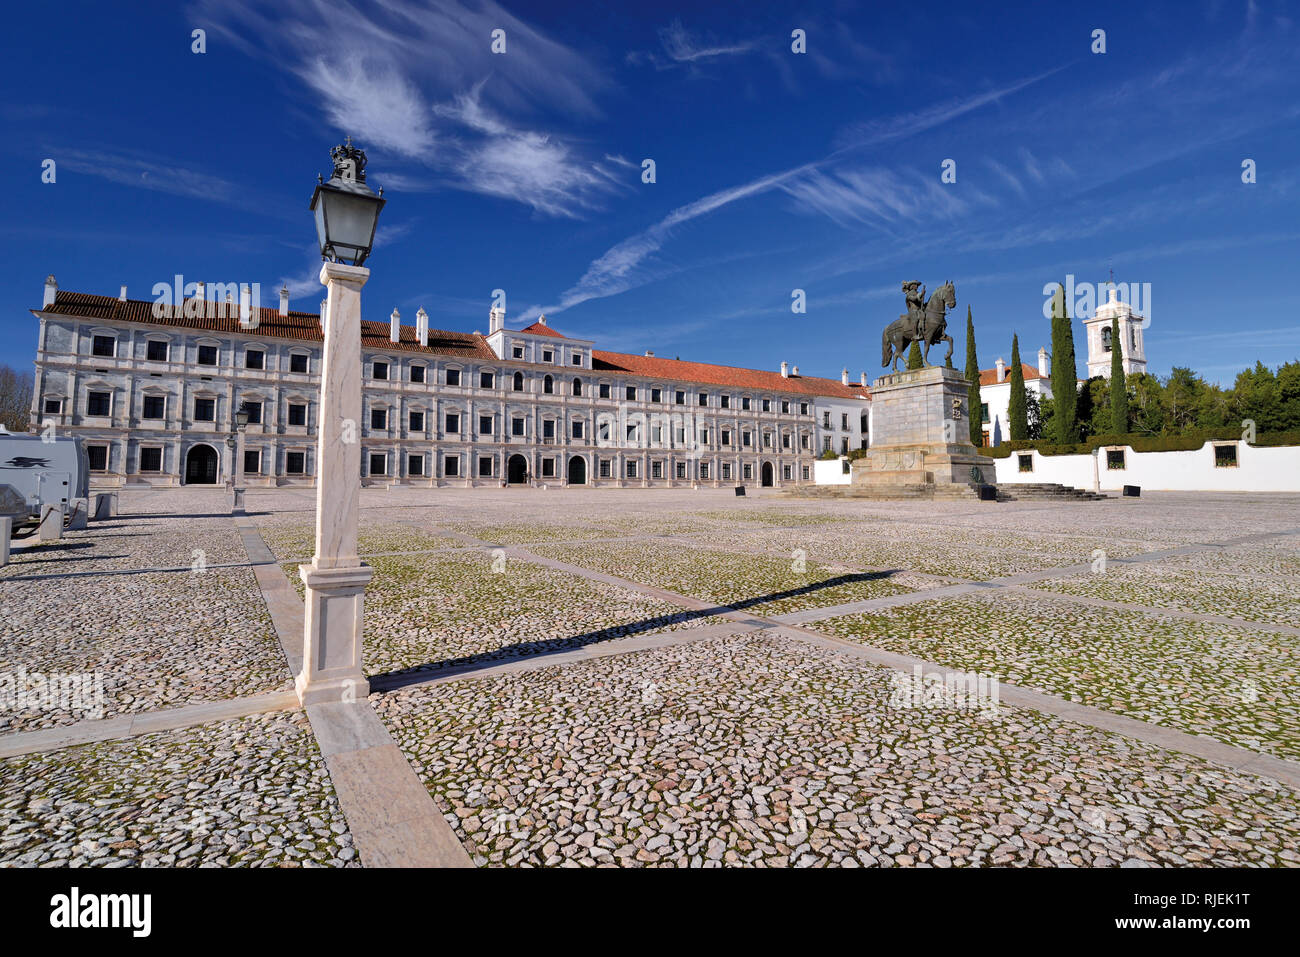 Wide Square with historic palace, equestrian monument and bright light of a sunny day - Stock Image